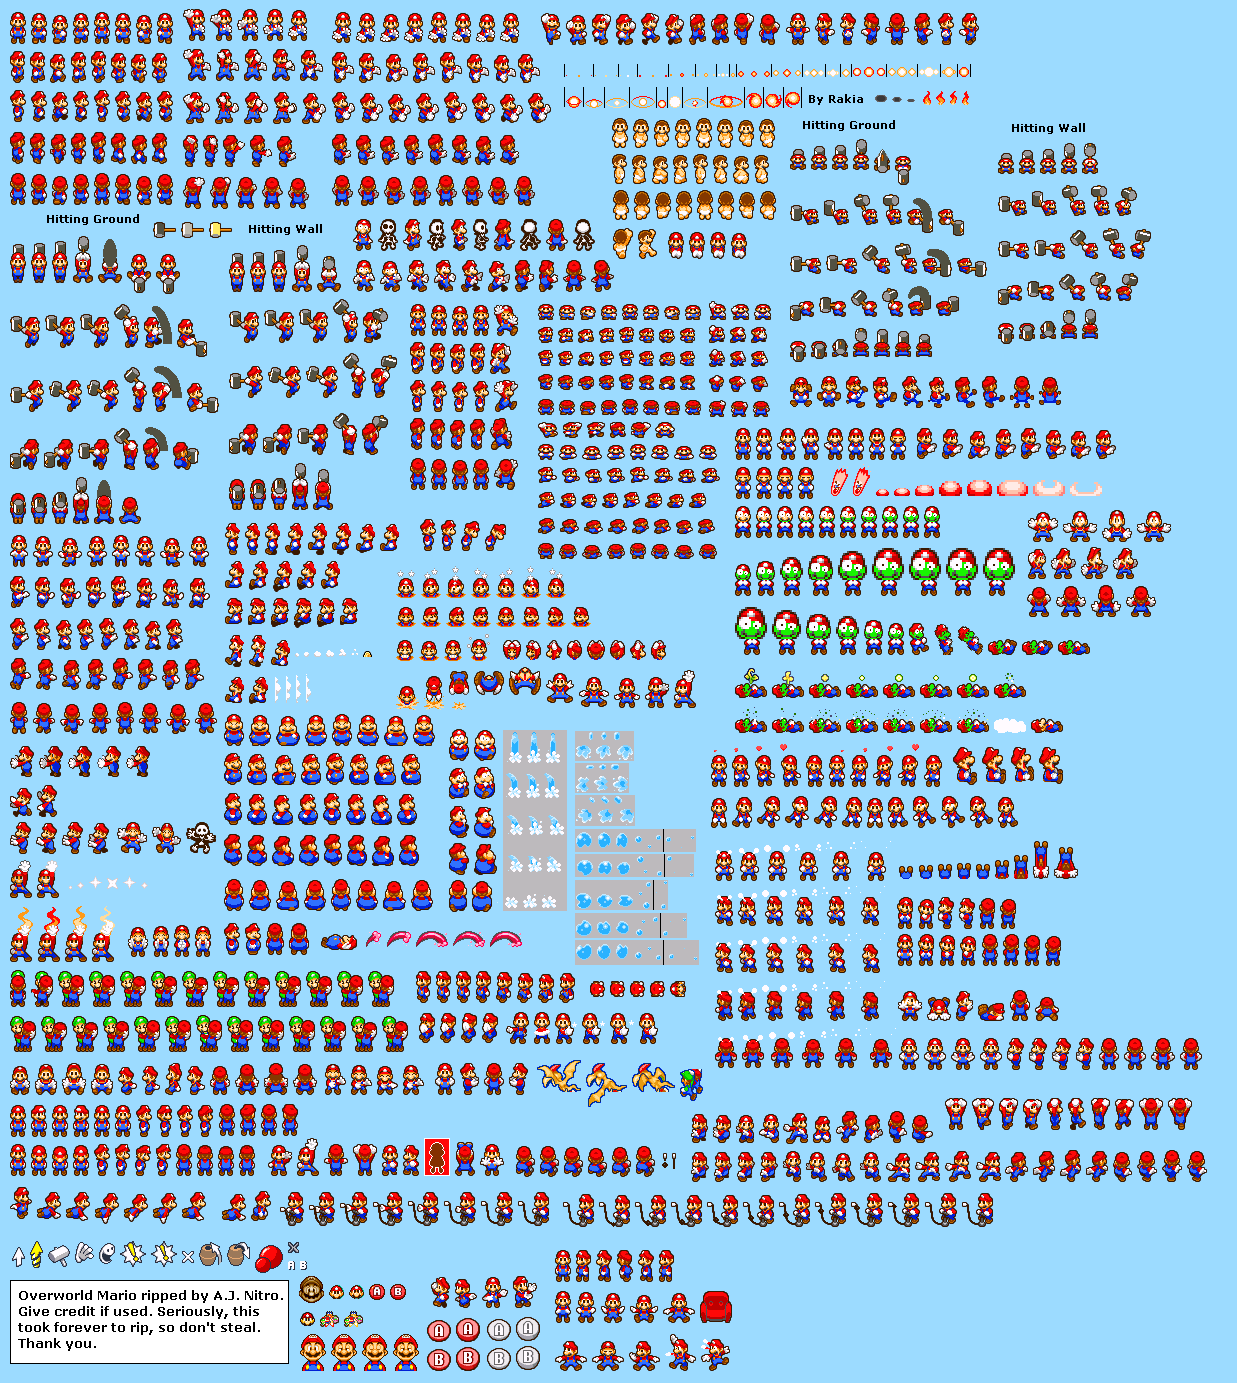 Background Sprite Sheets http://laurentlazard.com/media/Mario-Background-Sprite.html